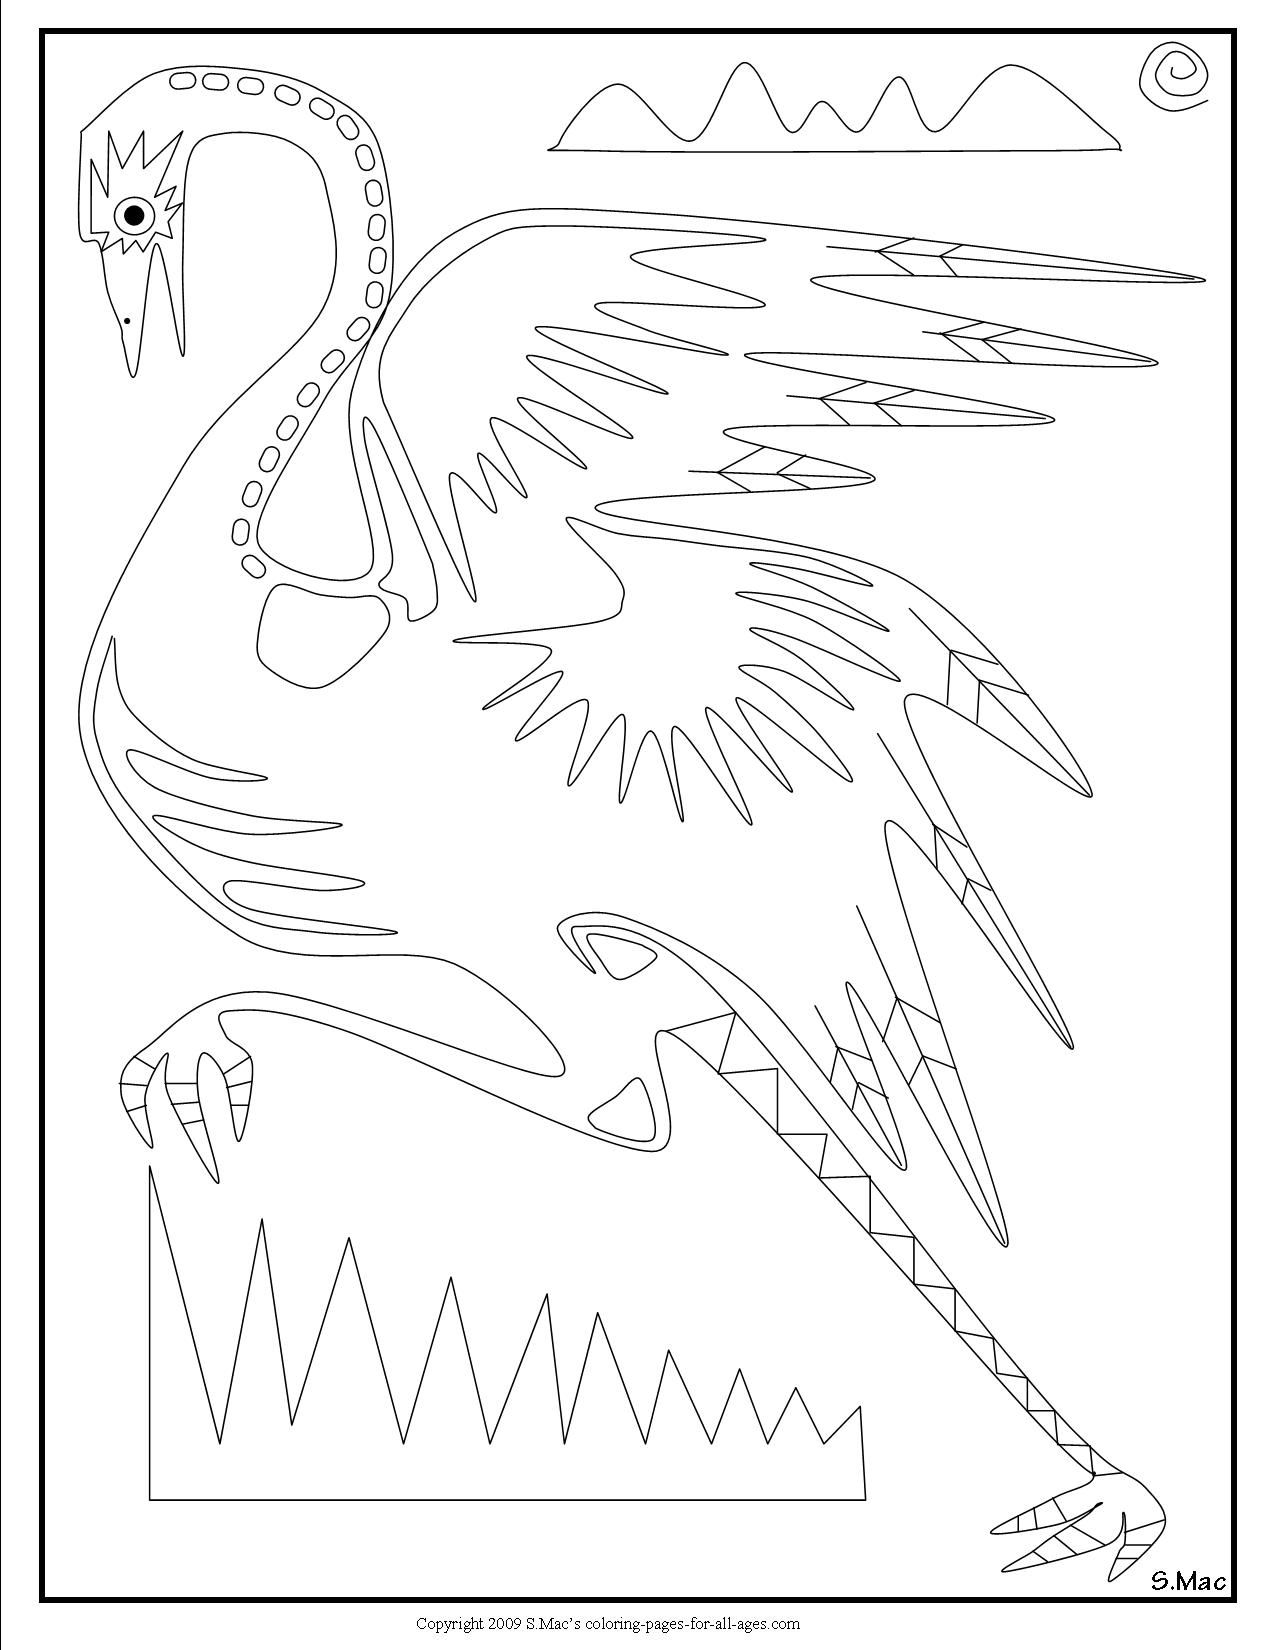 X Ray Art Coloring Pages Xray Art Coloring Pages Animal Coloring Pages